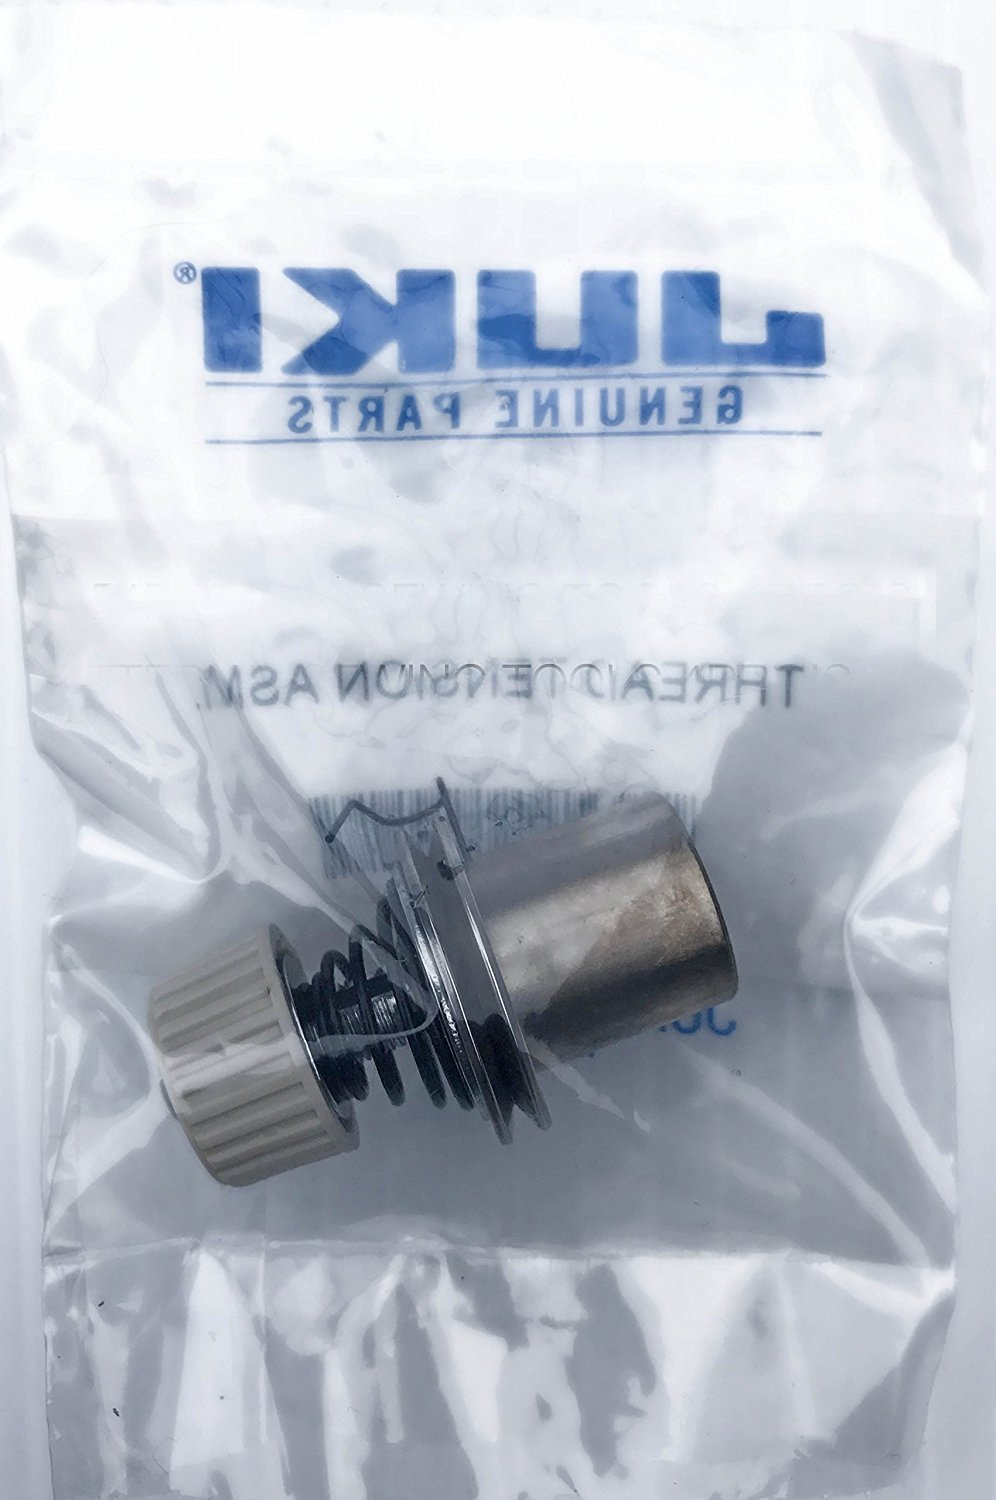 SimSel Thread Tension Assembly Small for Juki DDL-5550 Industrial Sewing Machines